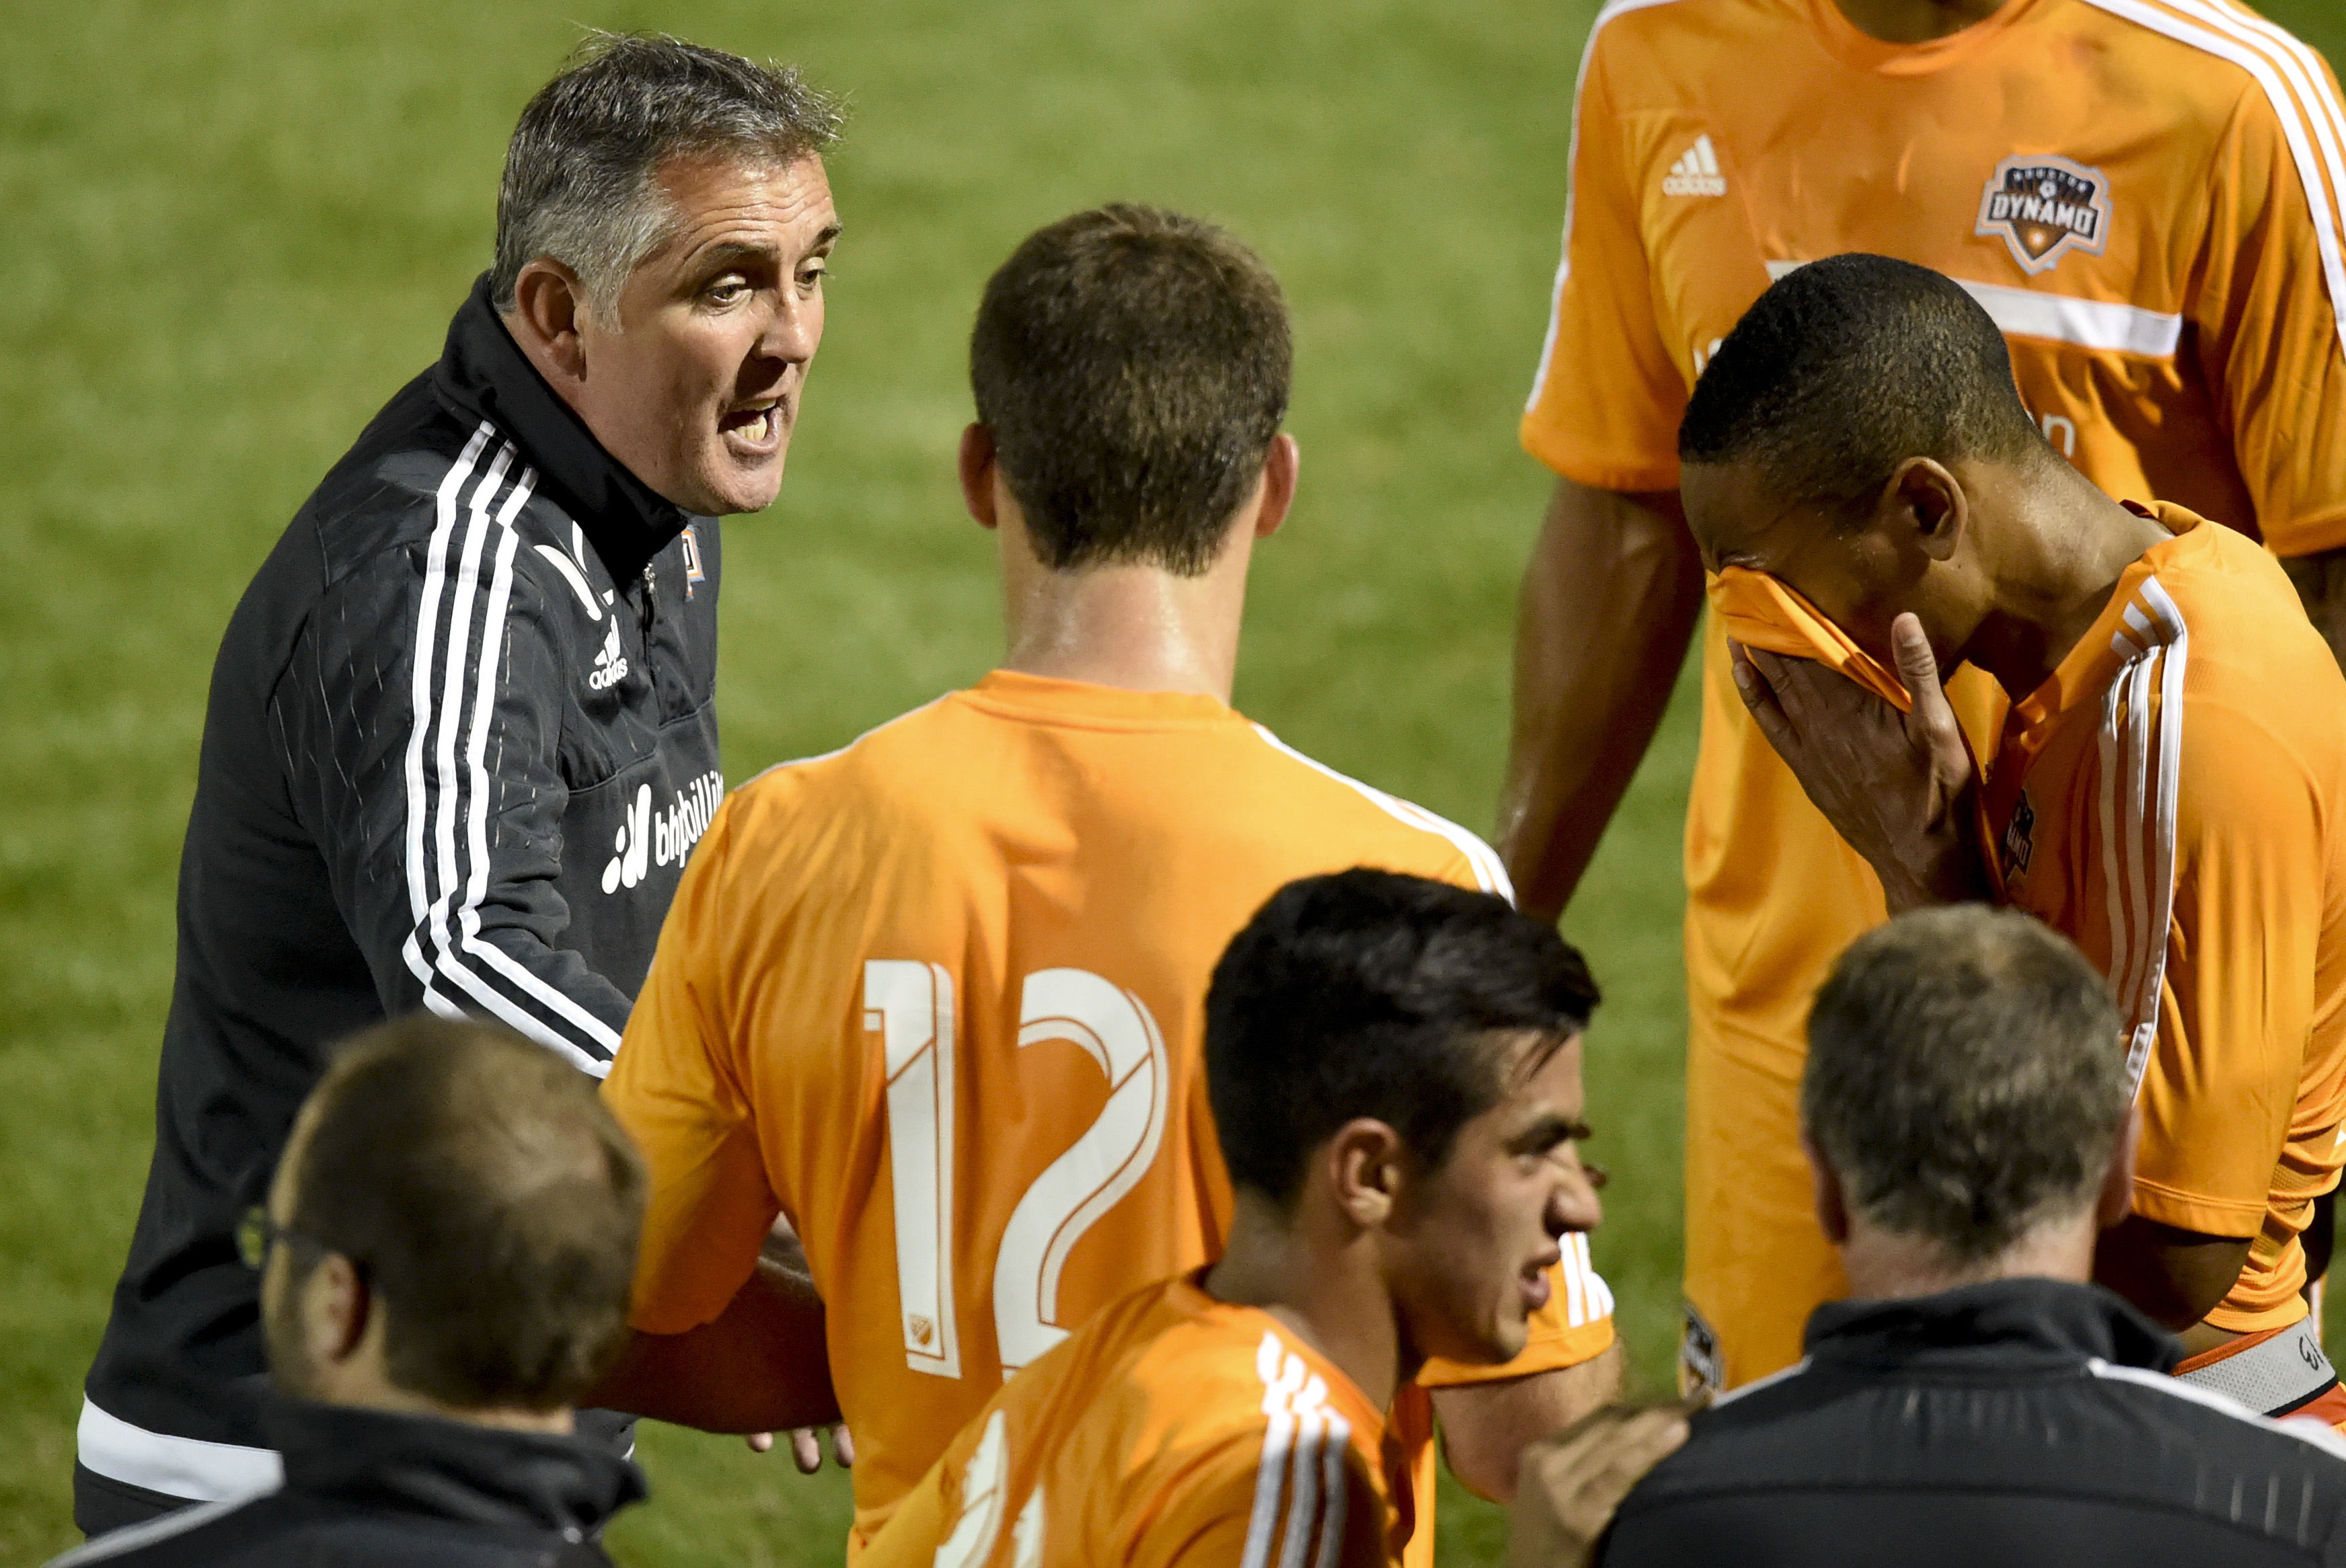 MLS Fantasy managers will be pinpointing every aspect of their rosters ahead of the March 6 kick-off.